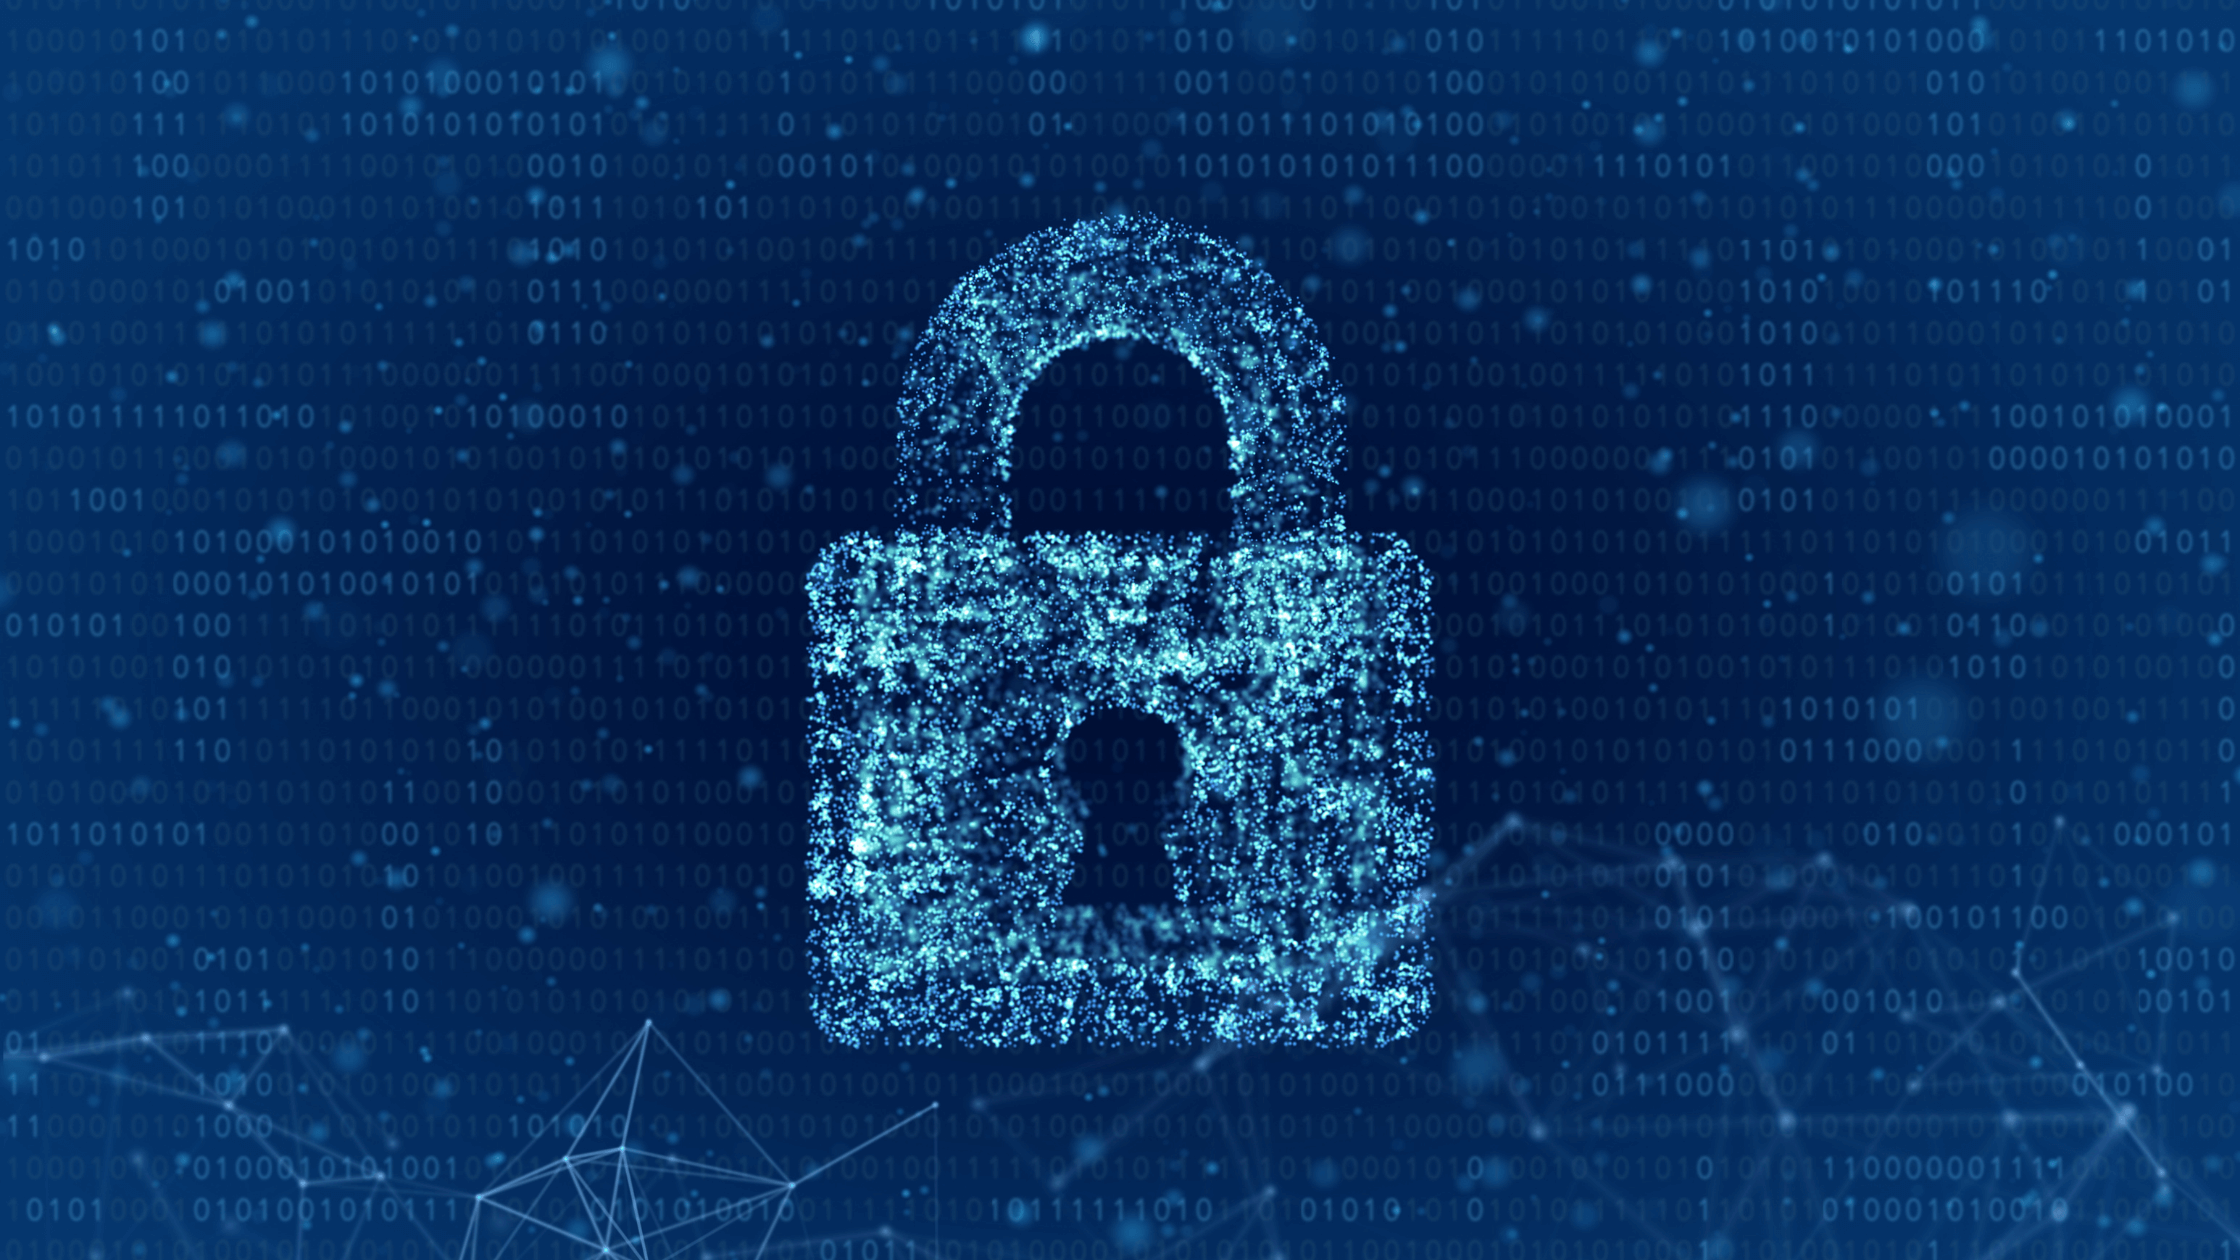 Data security and governance